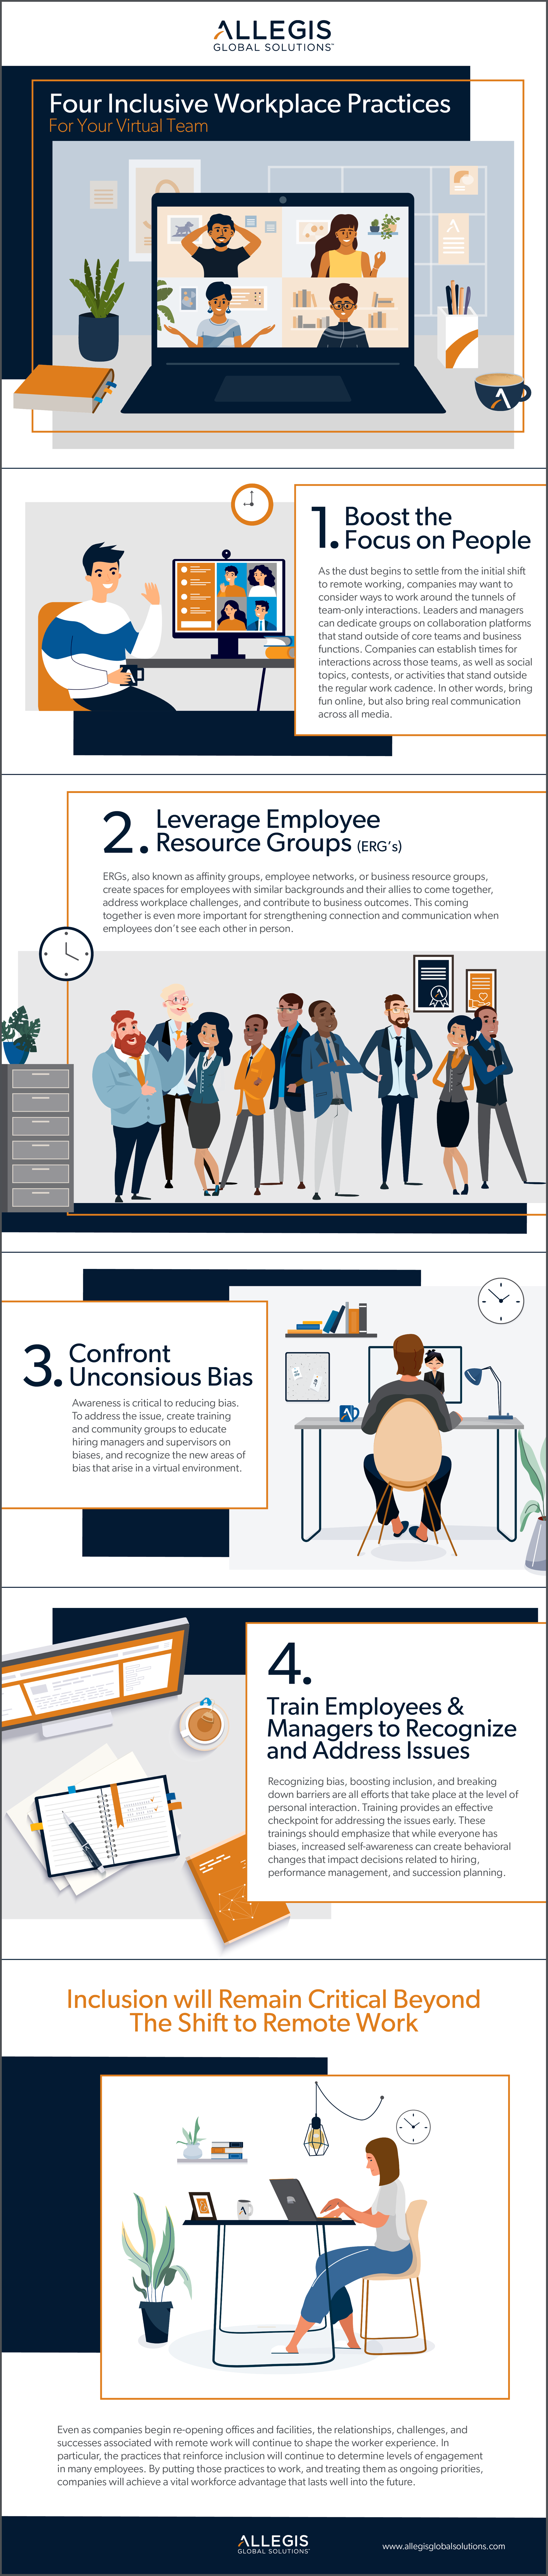 Four inclusive workplace practices infographic